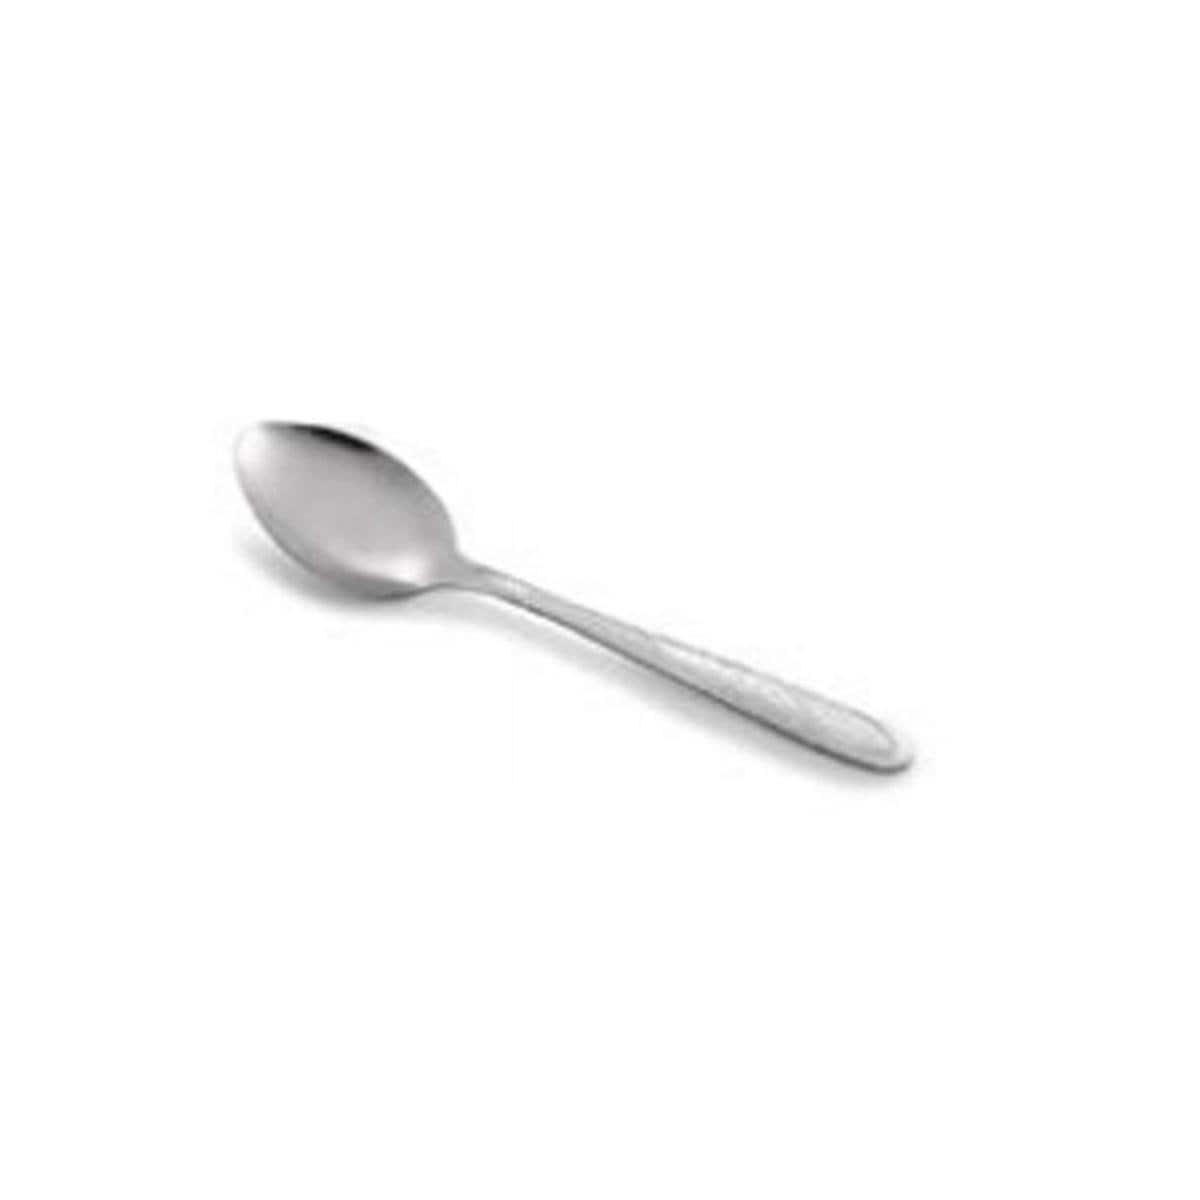 TS-C212 1 x 12pcs S/S SABLE Teaspoon